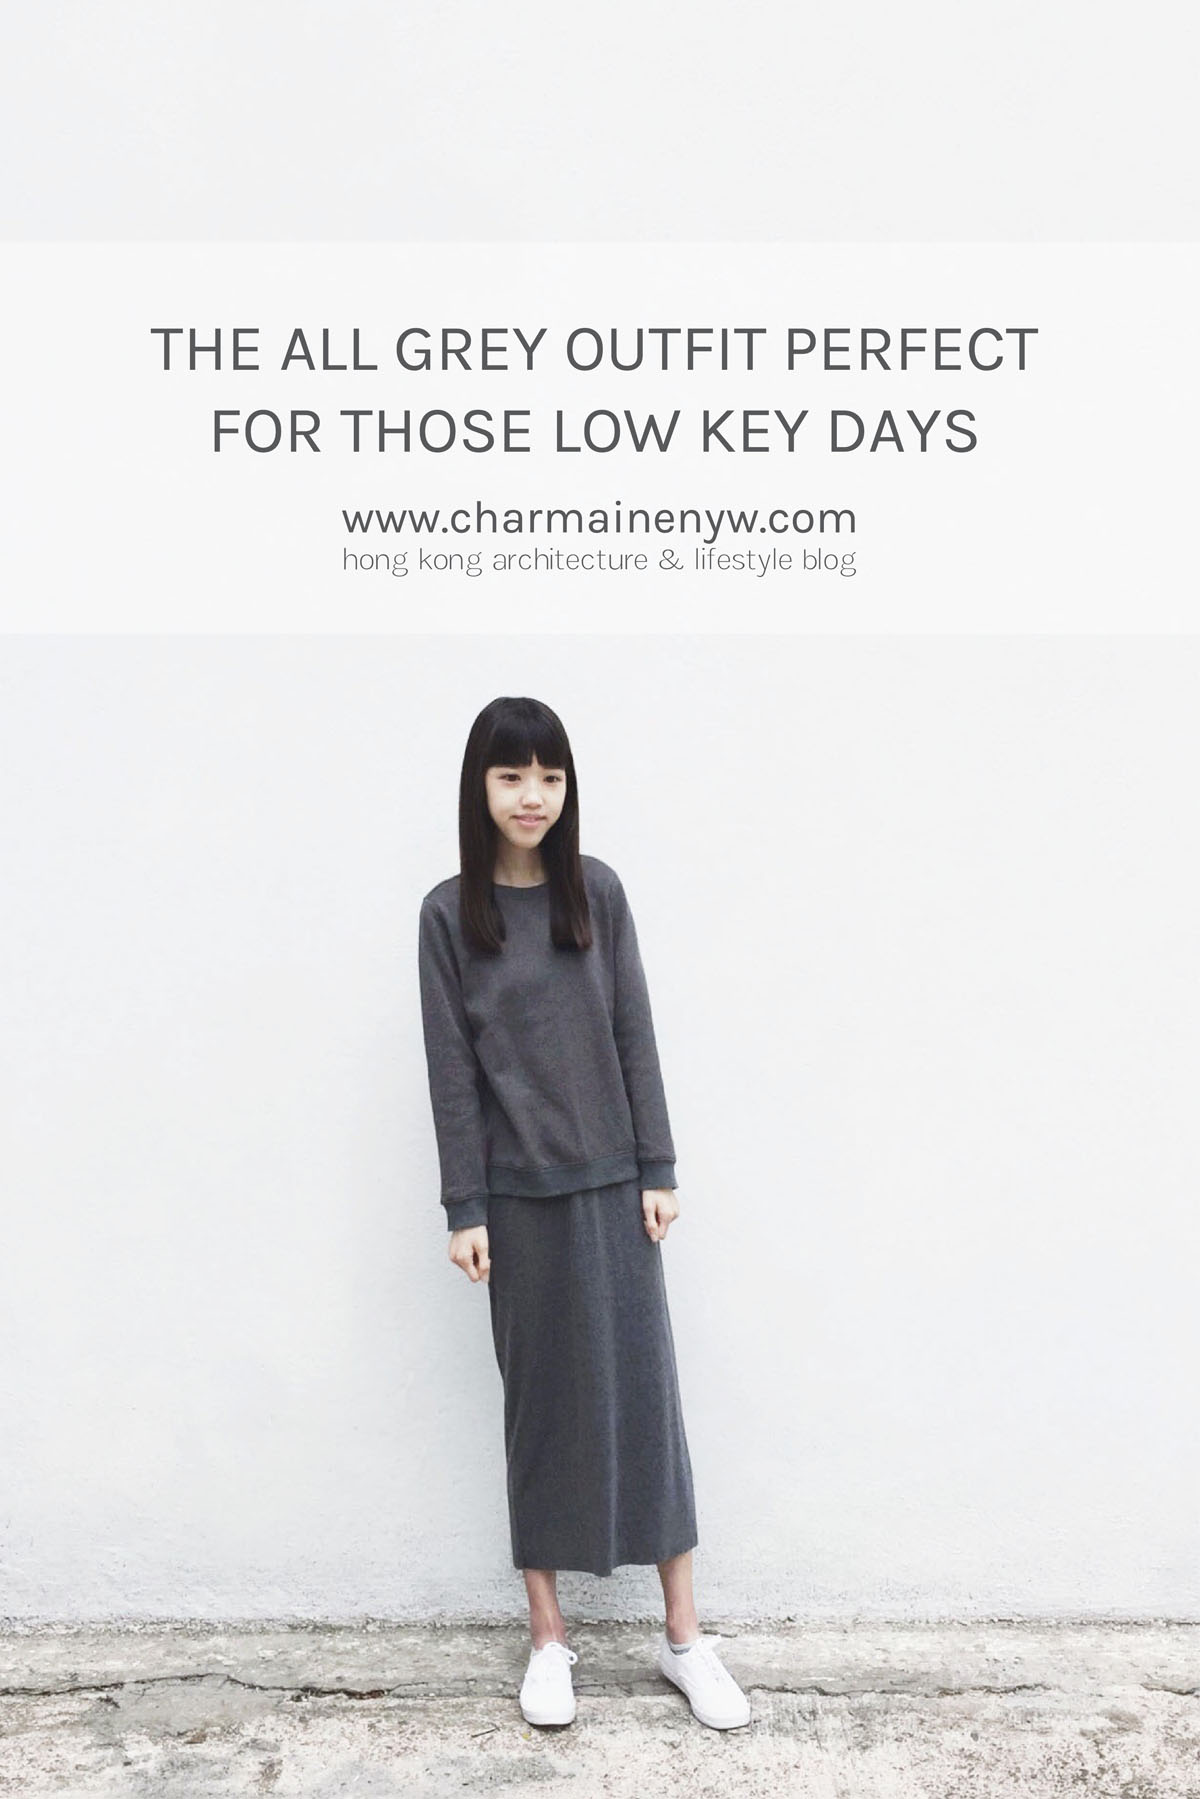 The all grey outfit is perfect for those lowkey days